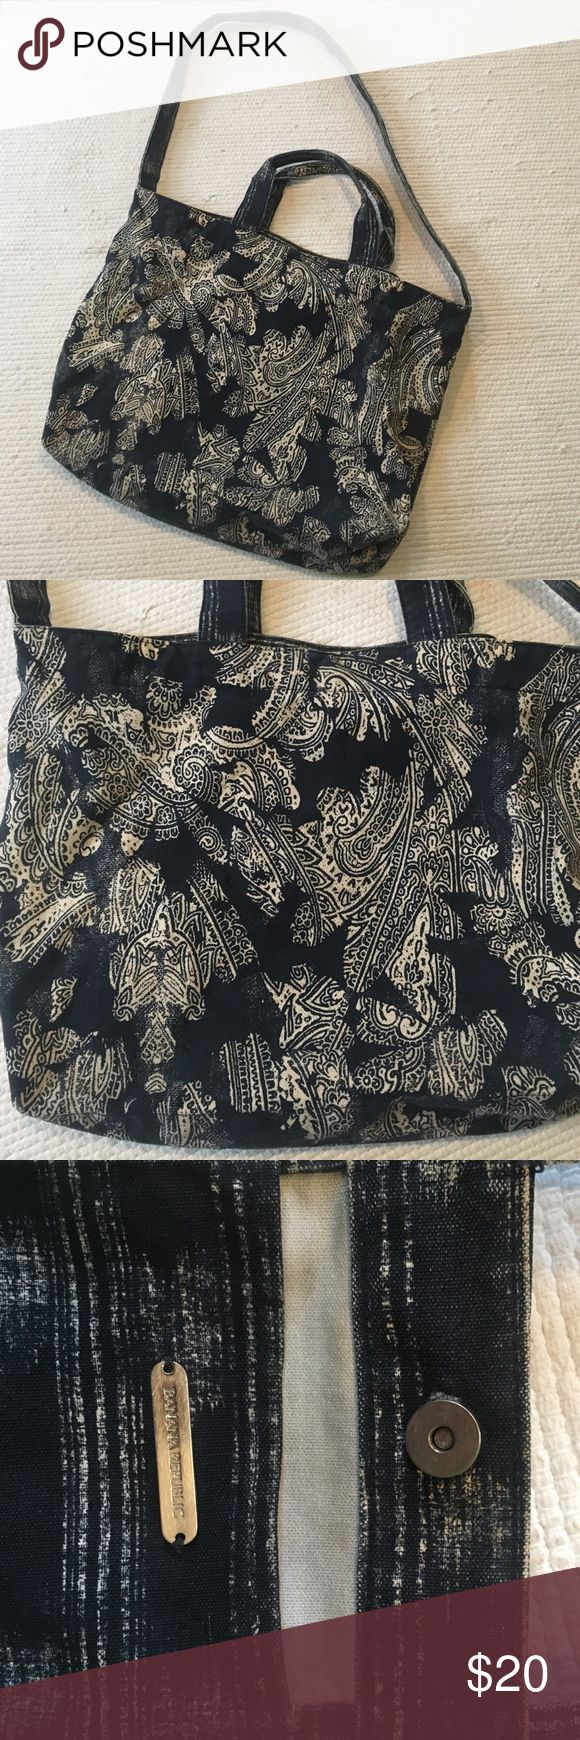 bananna republic canvas/ denim bag Great beach bag or school bag. Gently used in great condition. Make me an offer! Banana Republic Bags Totes